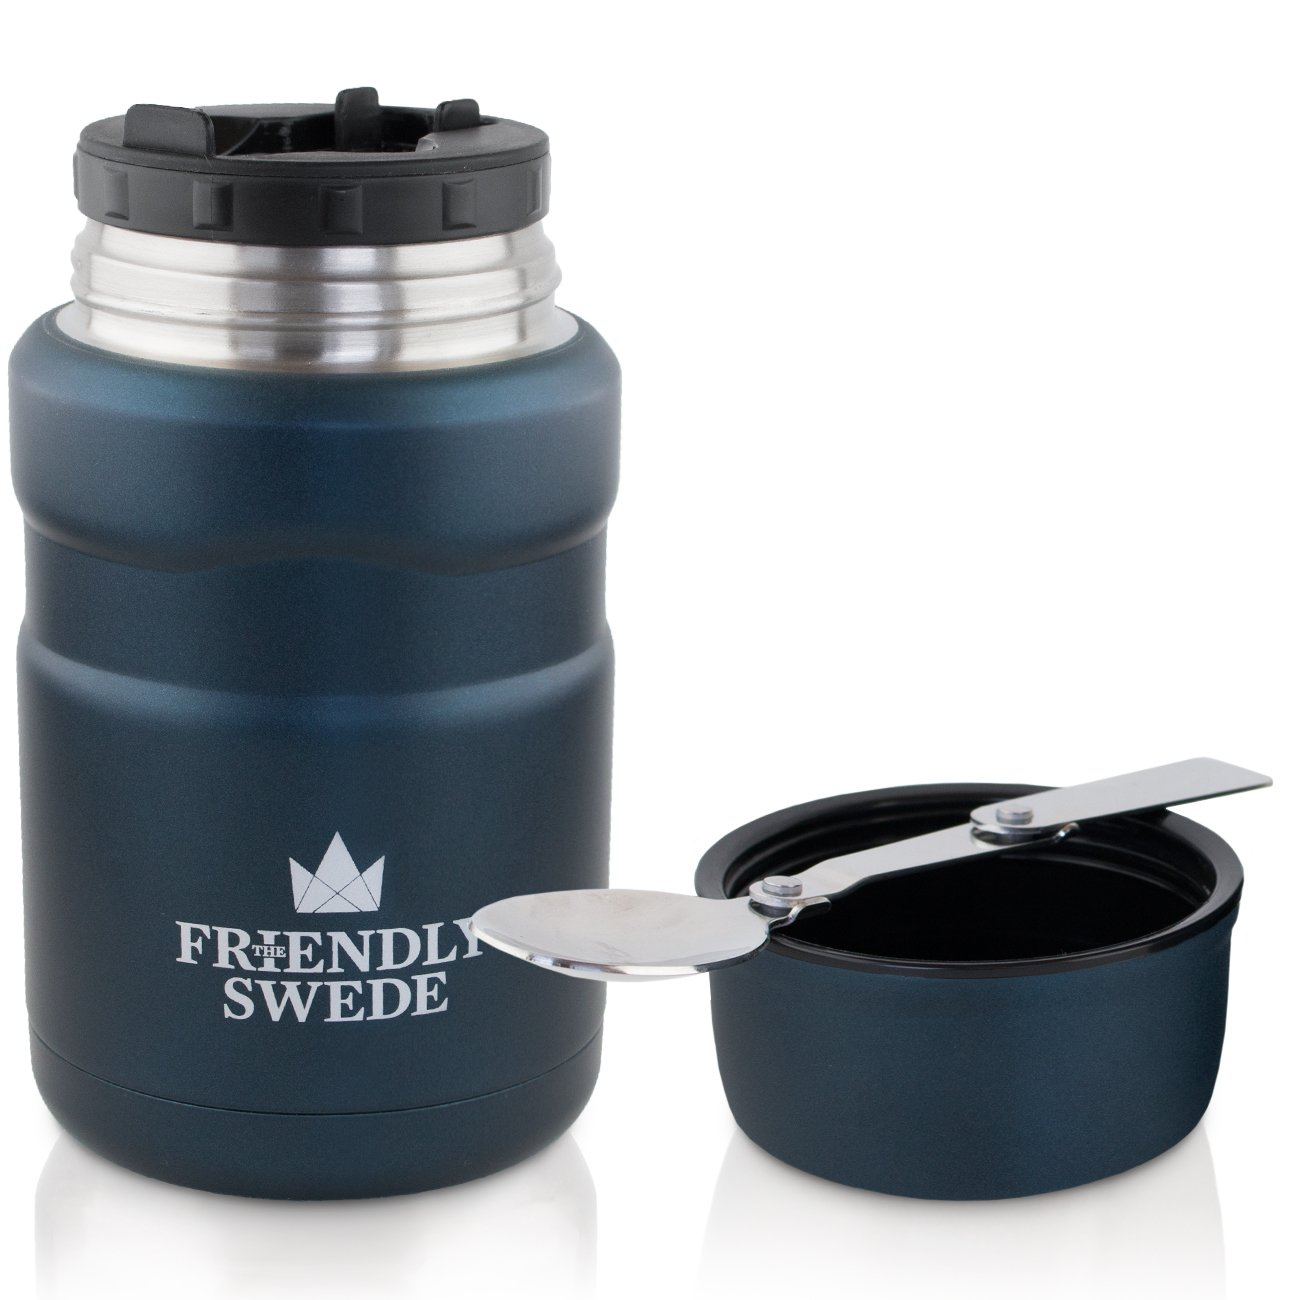 Food Jar Vacuum Insulated - Stainless Steel 16 oz. Food Flask With Folding Spoon, Cup and Storage for Travel, Camping and Hiking- by The Friendly Swede (Midnight Blue)